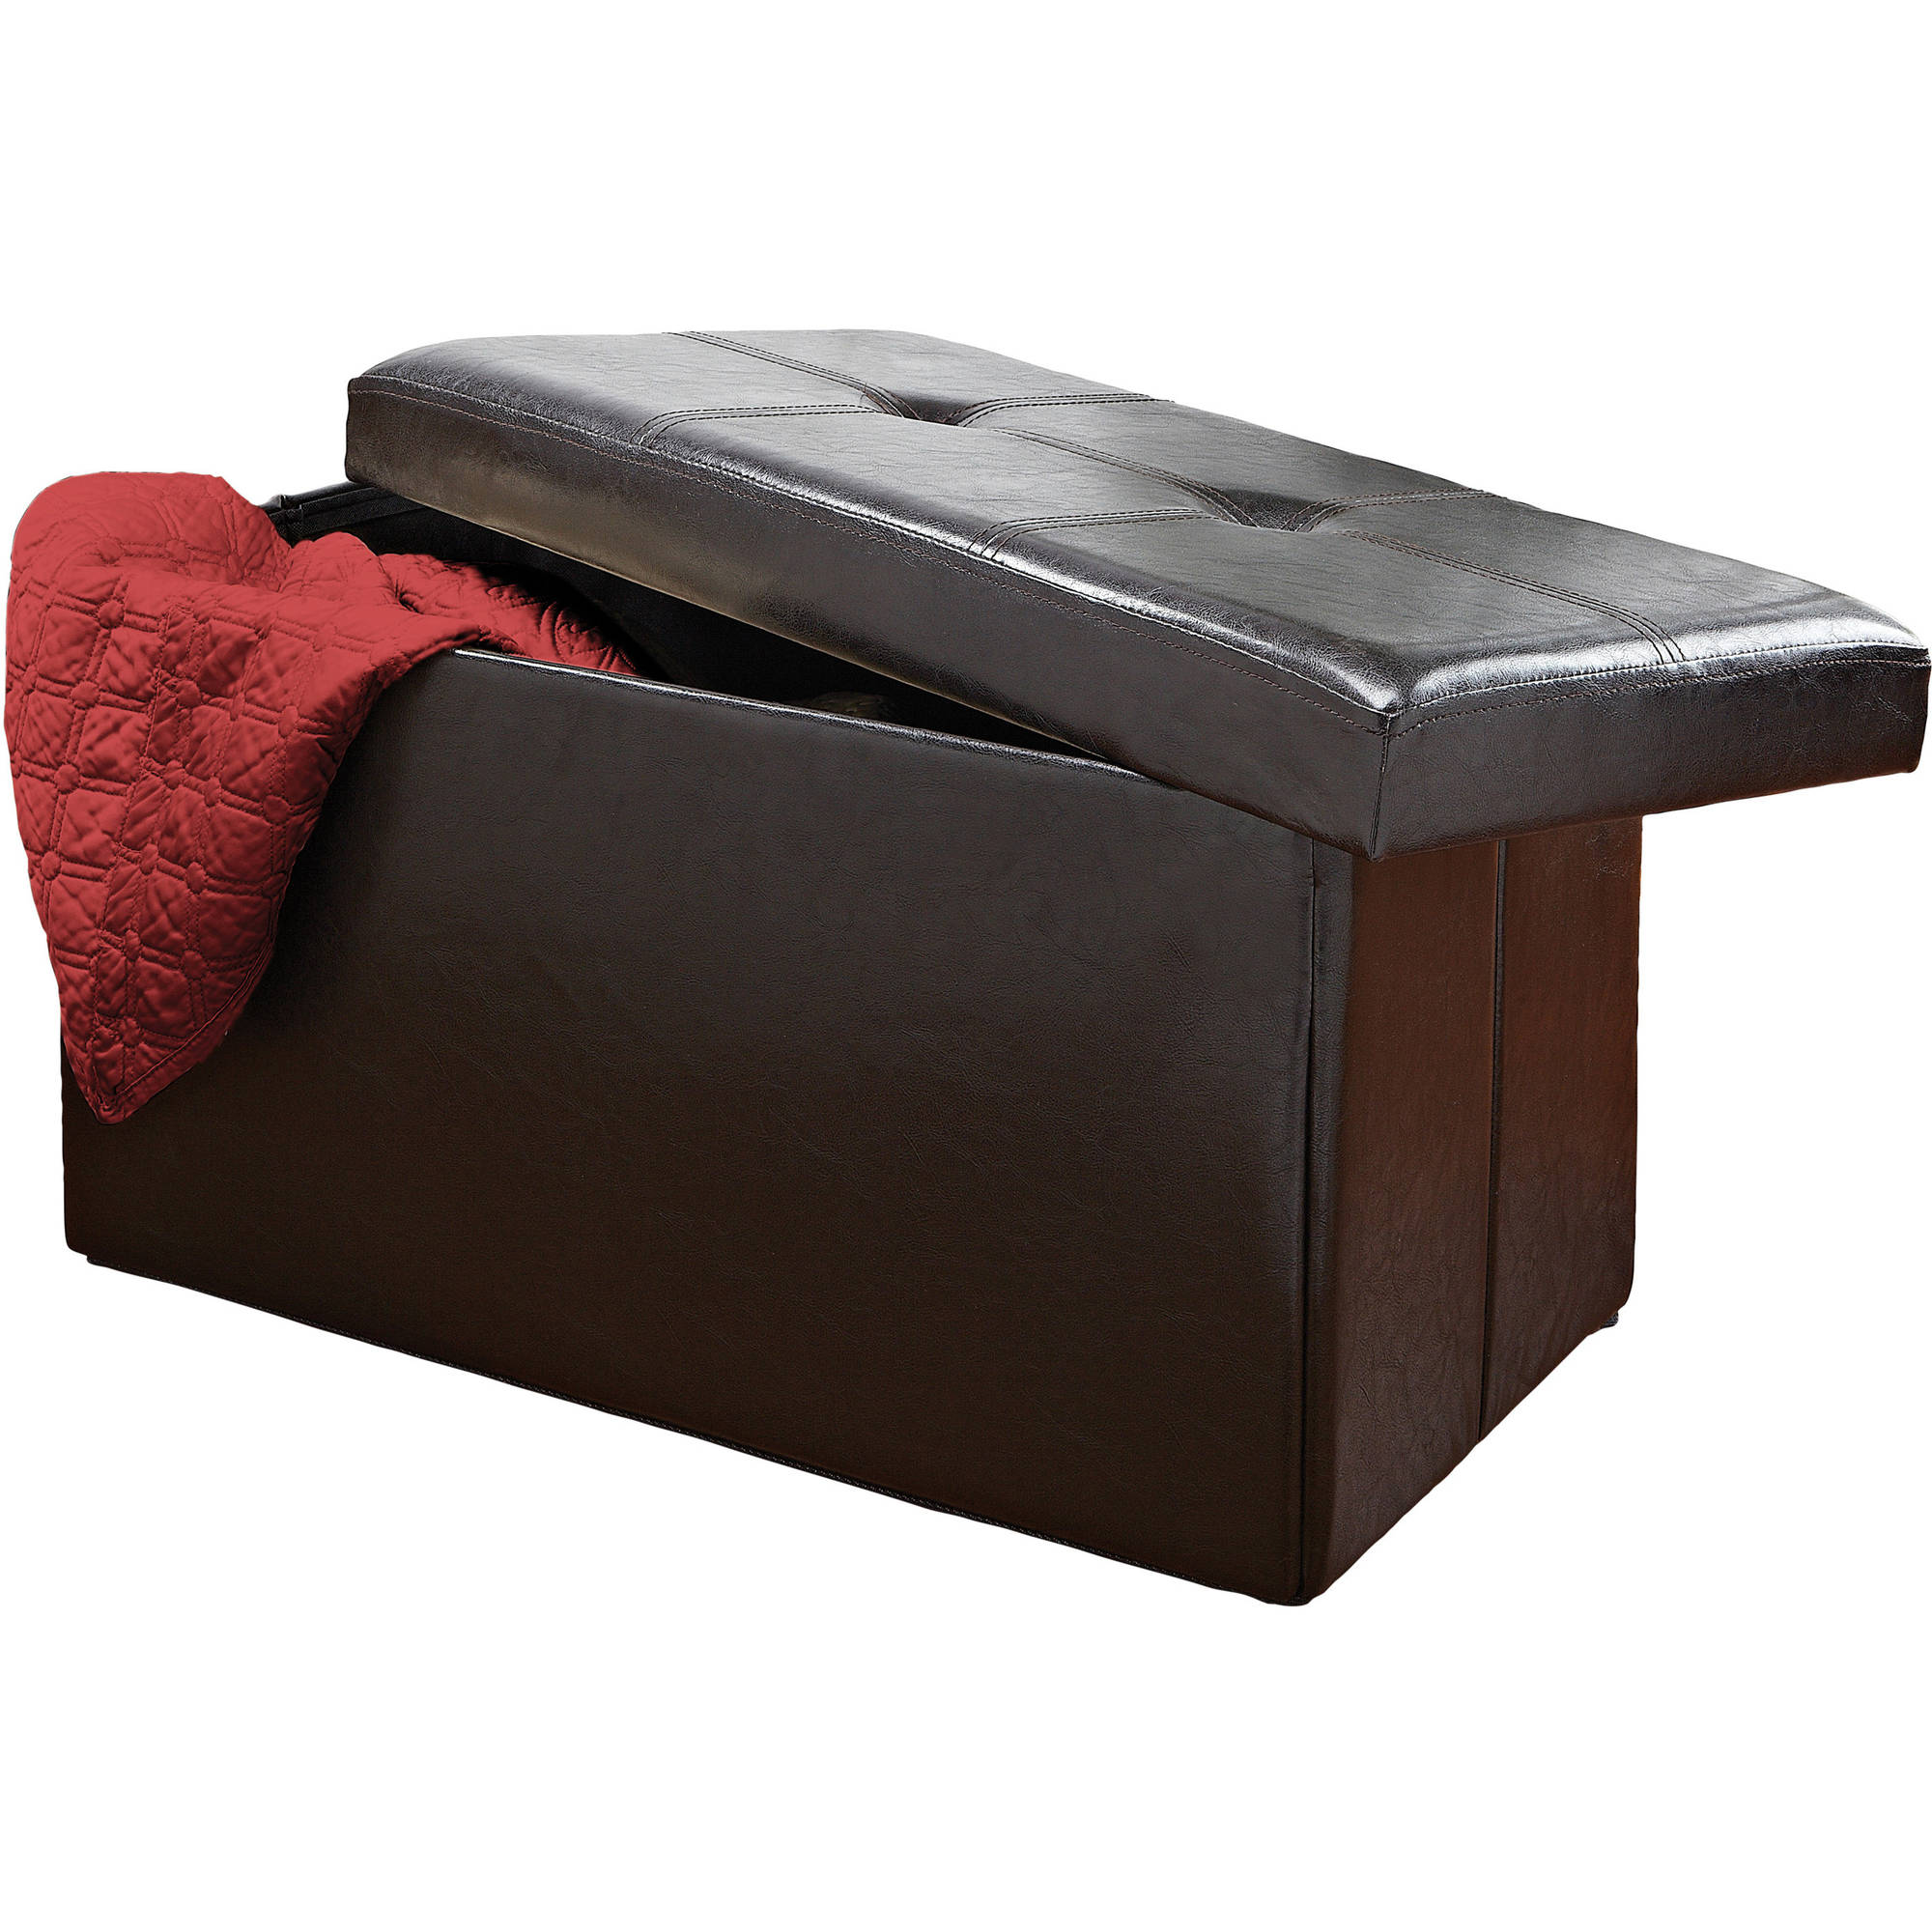 Ordinaire Simplify Double Folding Ottoman, Black   Walmart.com